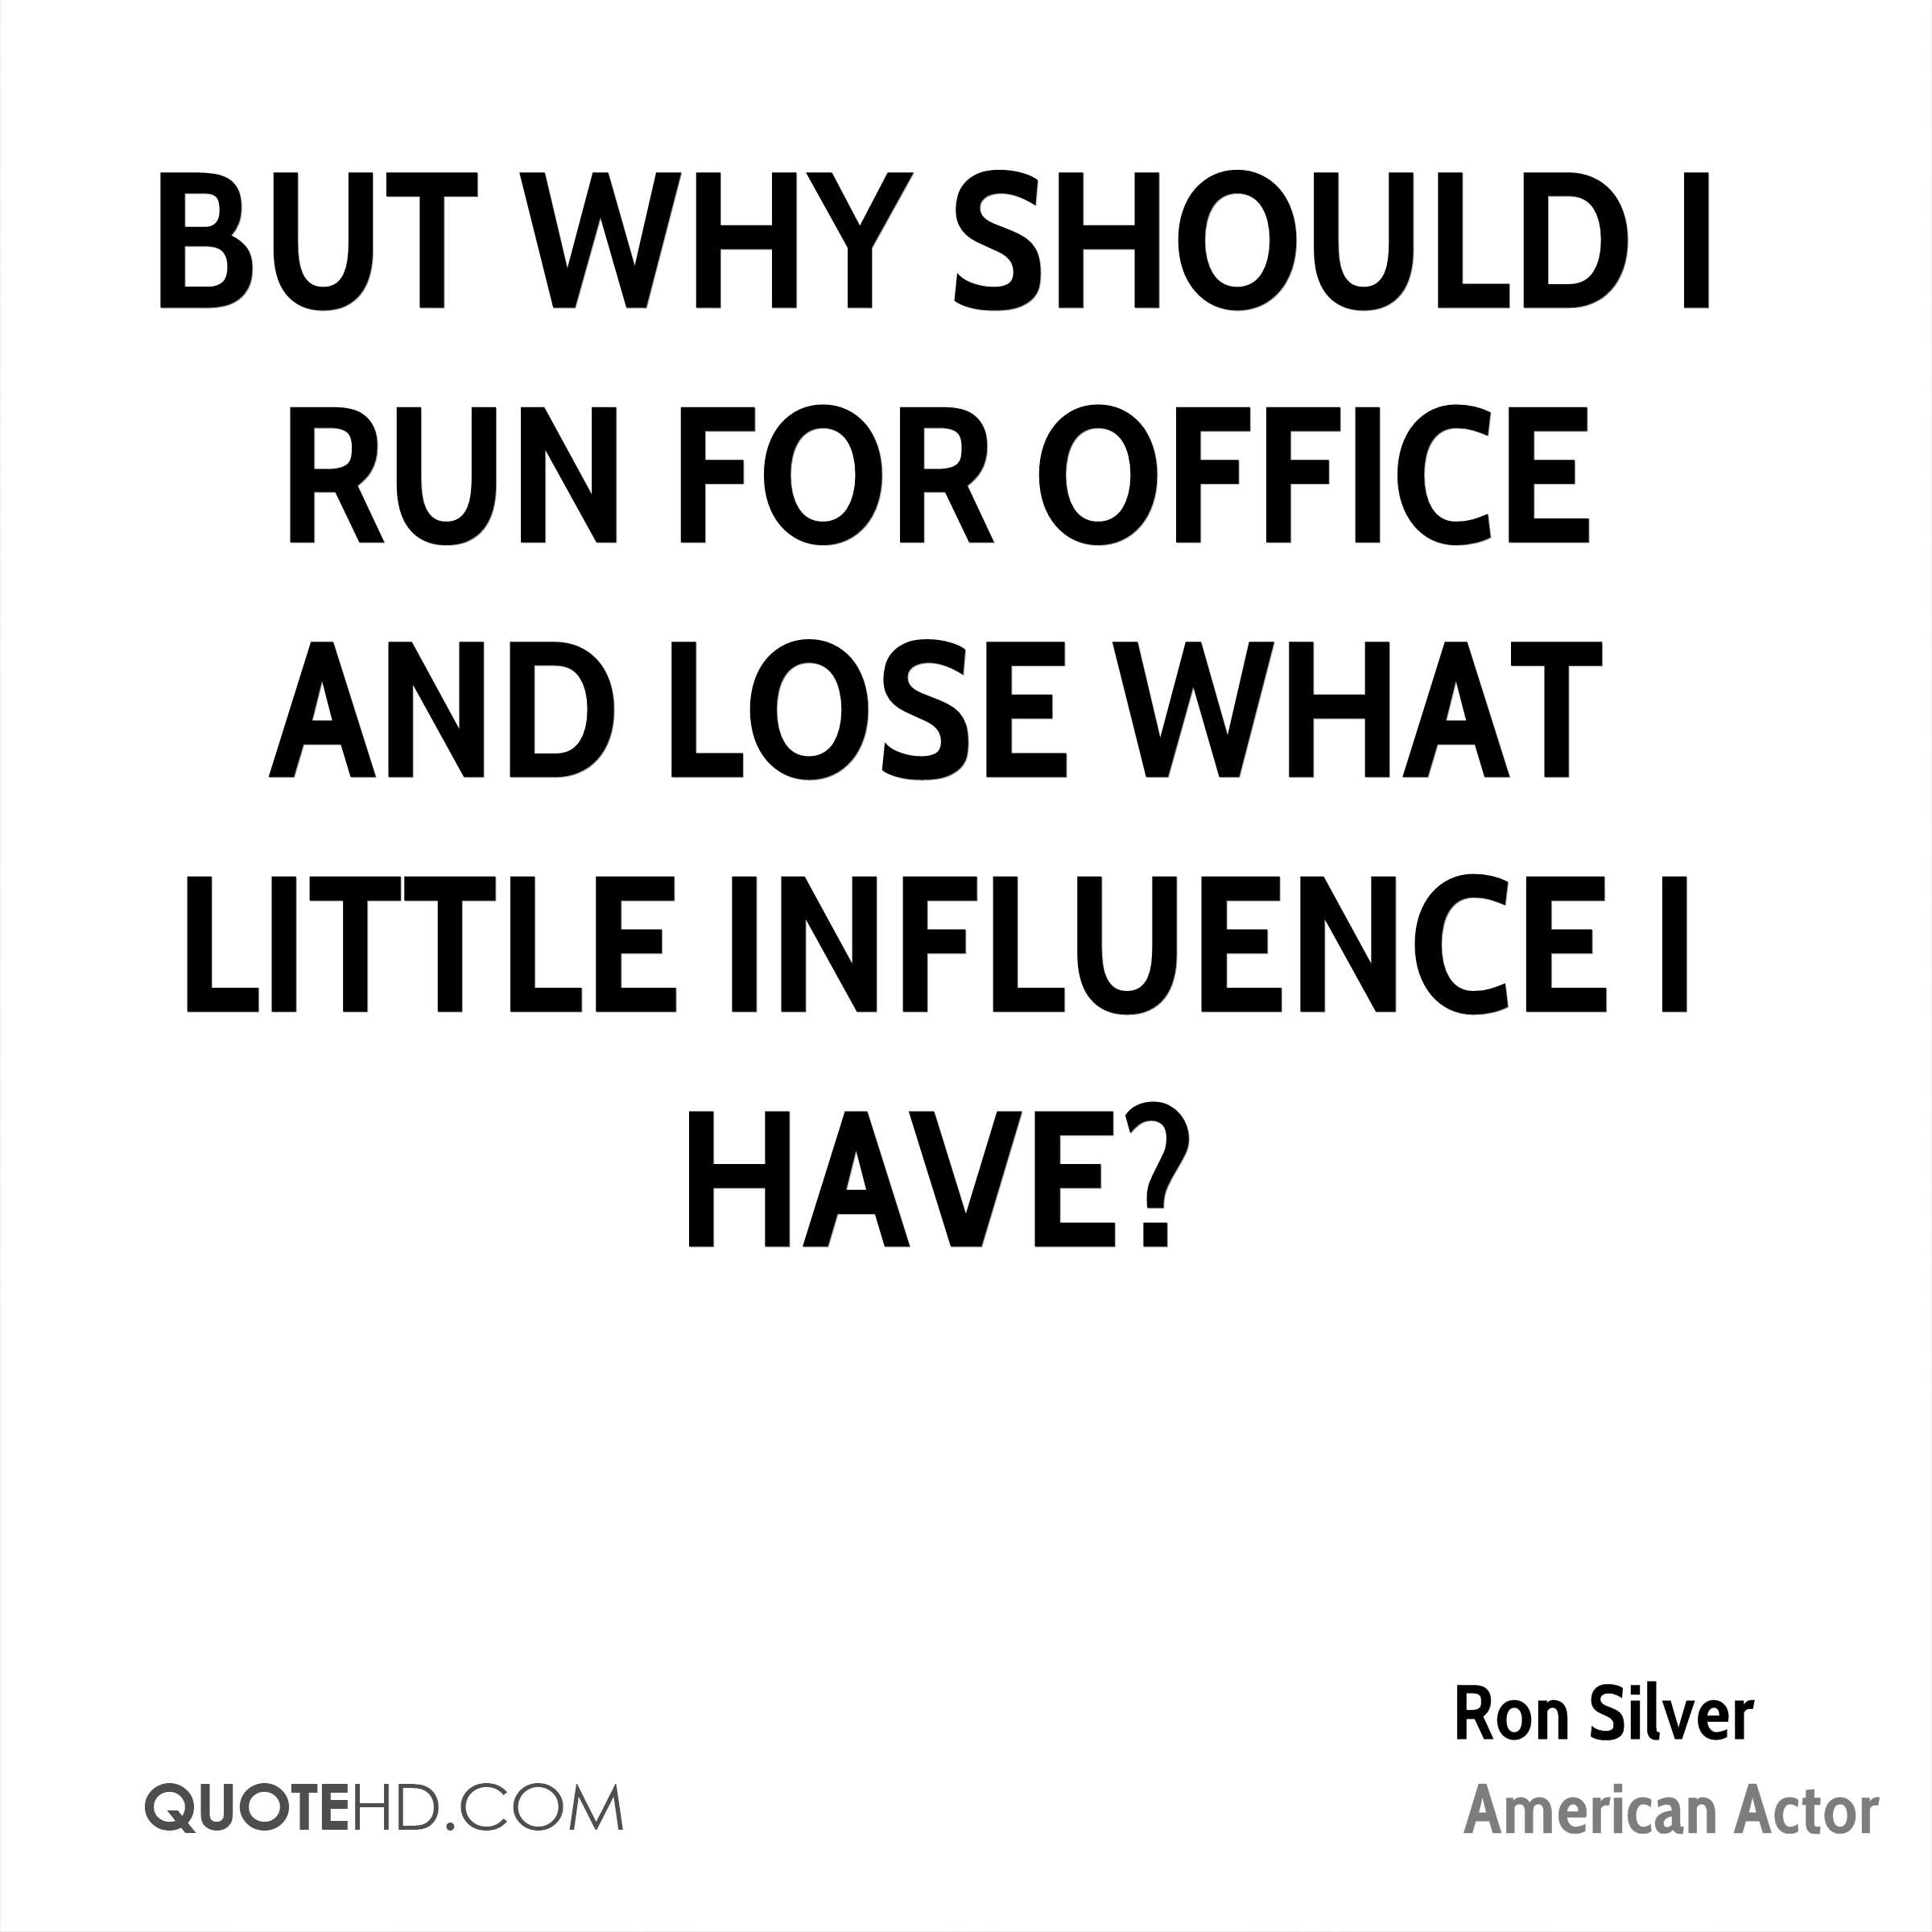 But why should I run for office and lose what little influence I have?